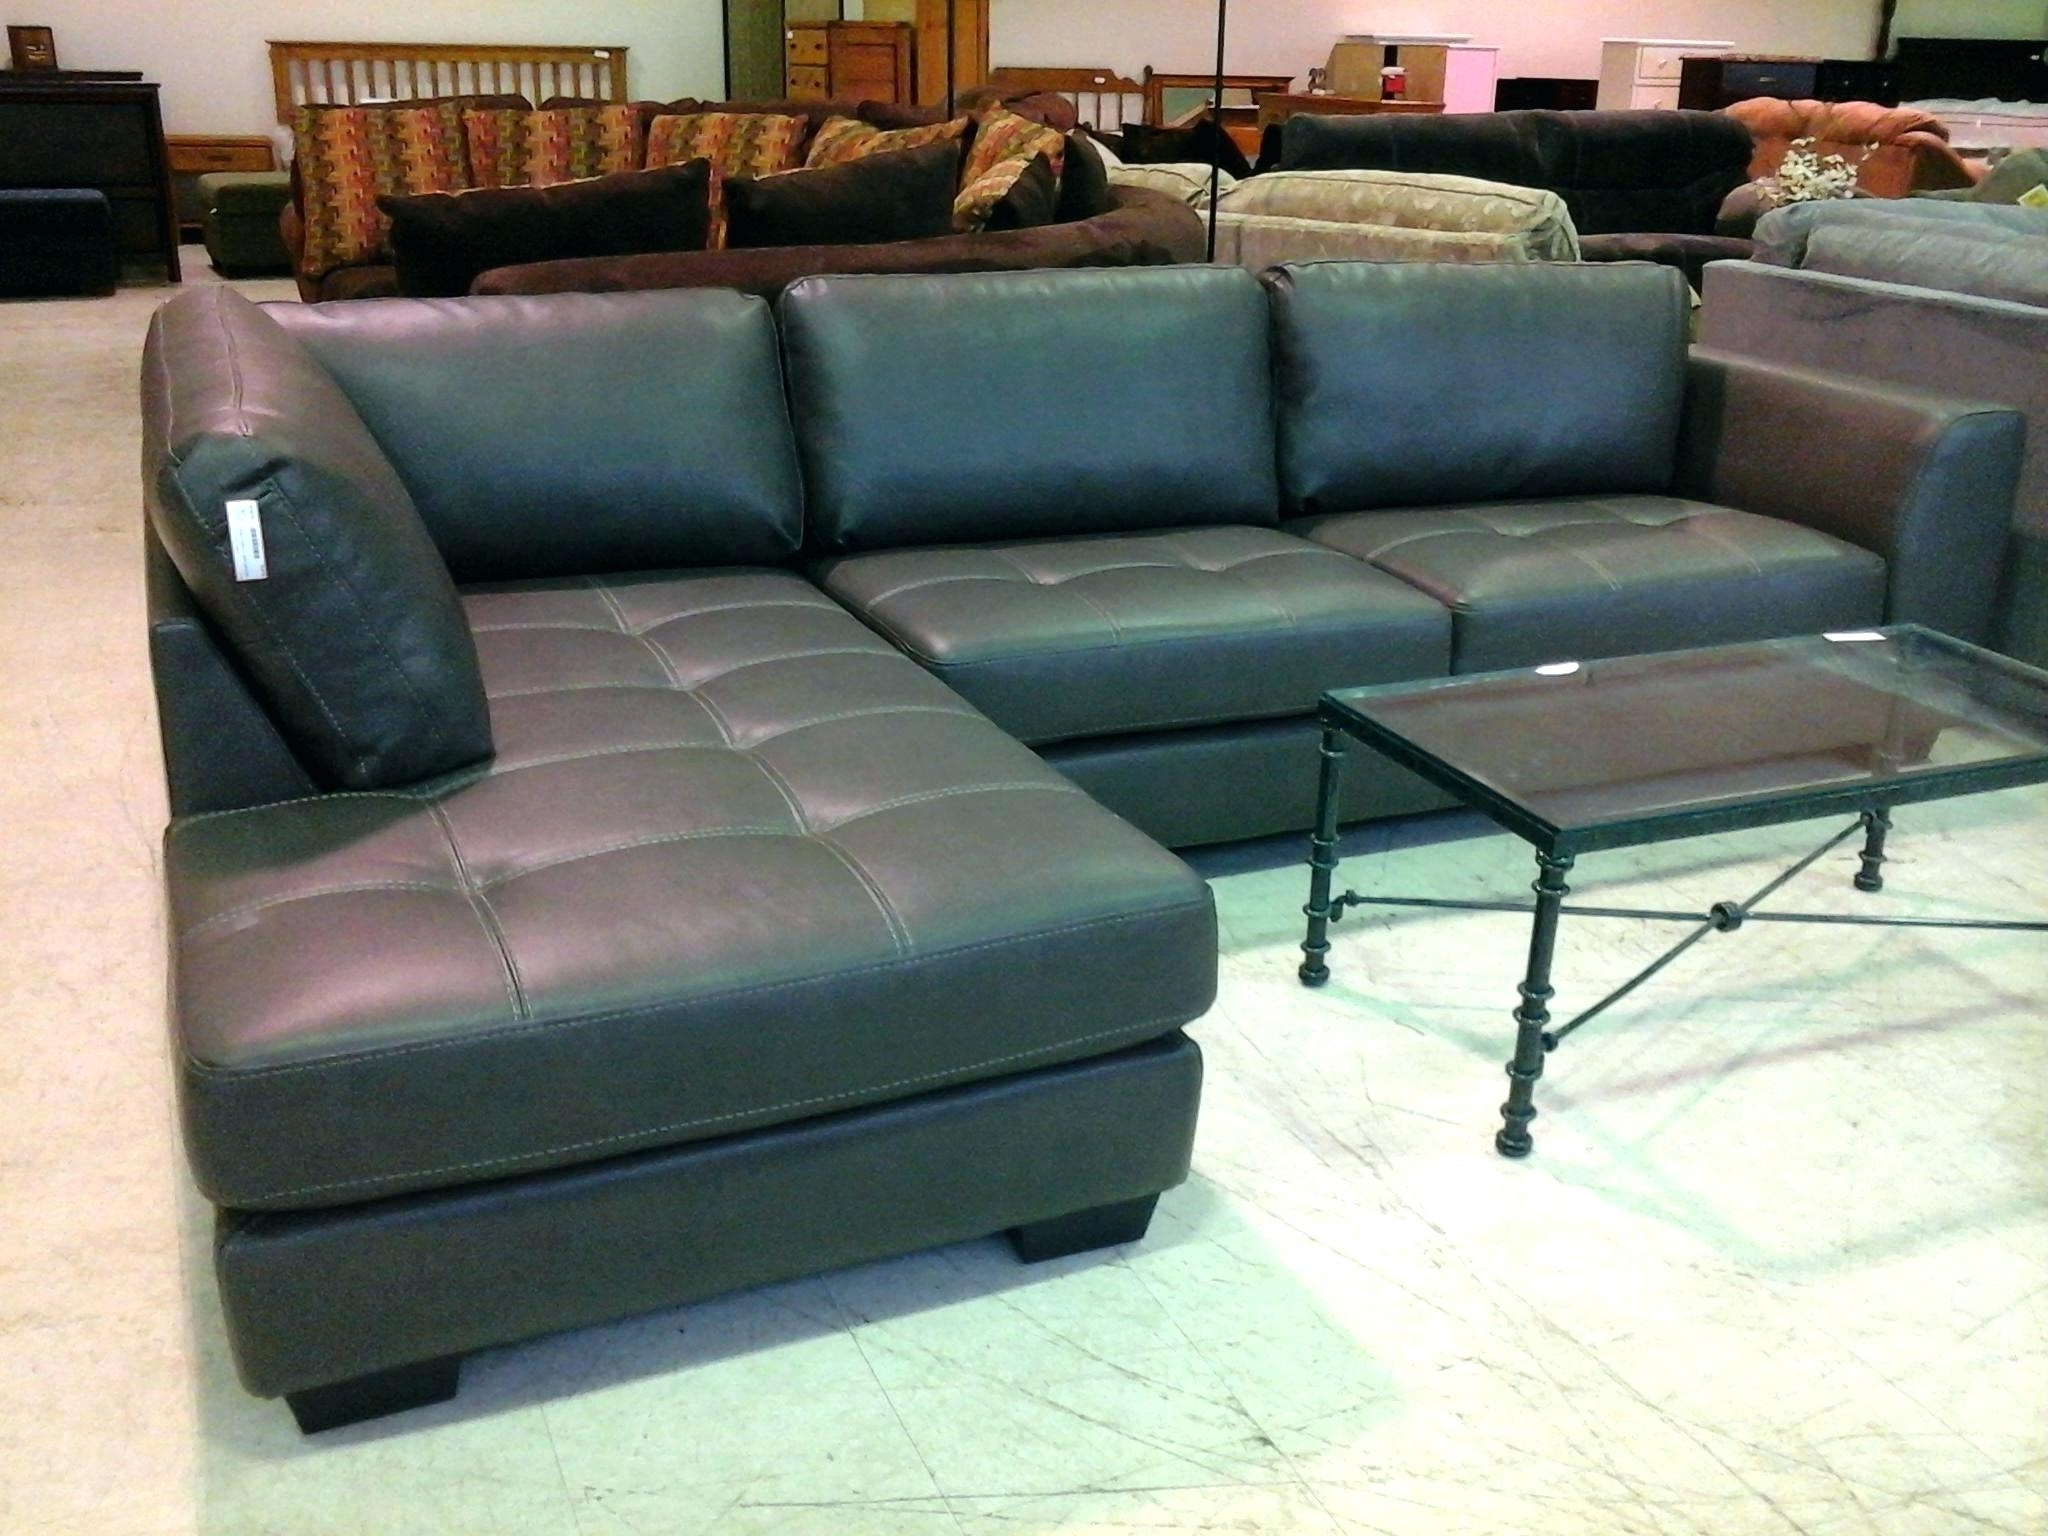 Trendy Sears Sectional Sofa Natuzzi Clearwater Grey – Jasonatavastrealty Pertaining To Craftsman Sectional Sofas (View 15 of 20)